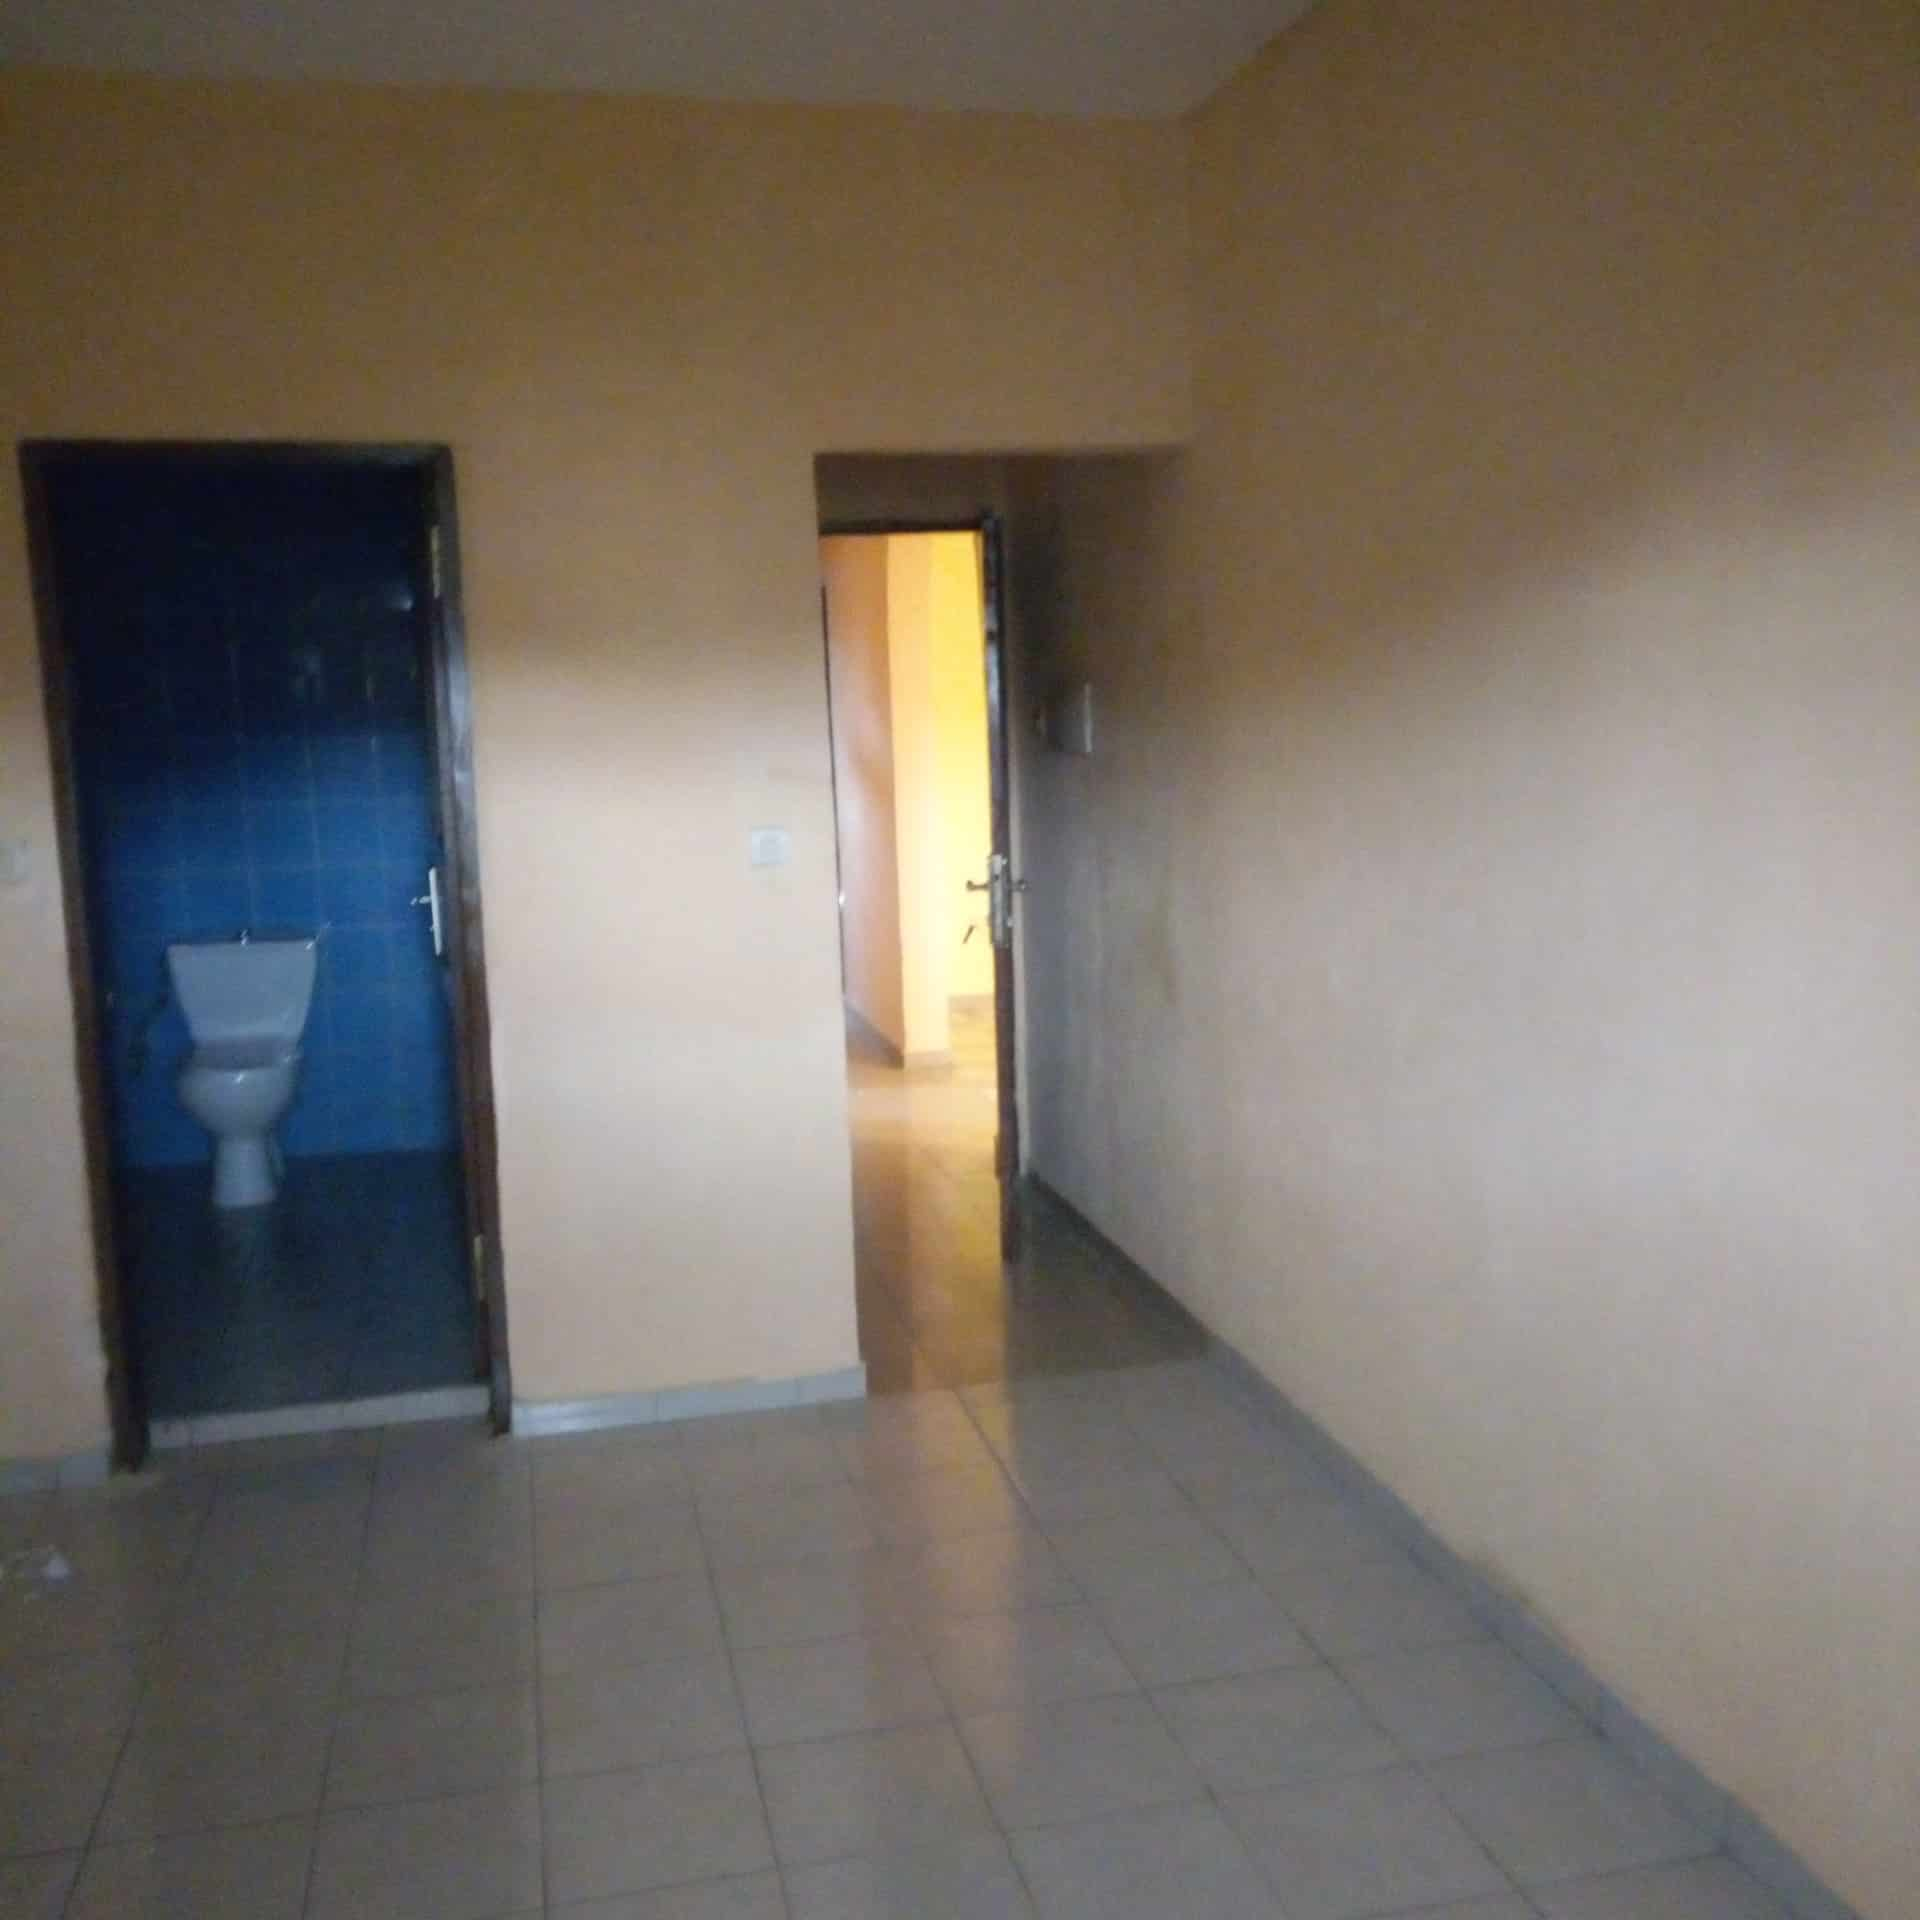 Apartment to rent - Douala, Logpom, Ver le lycée - 1 living room(s), 3 bedroom(s), 2 bathroom(s) - 130 000 FCFA / month